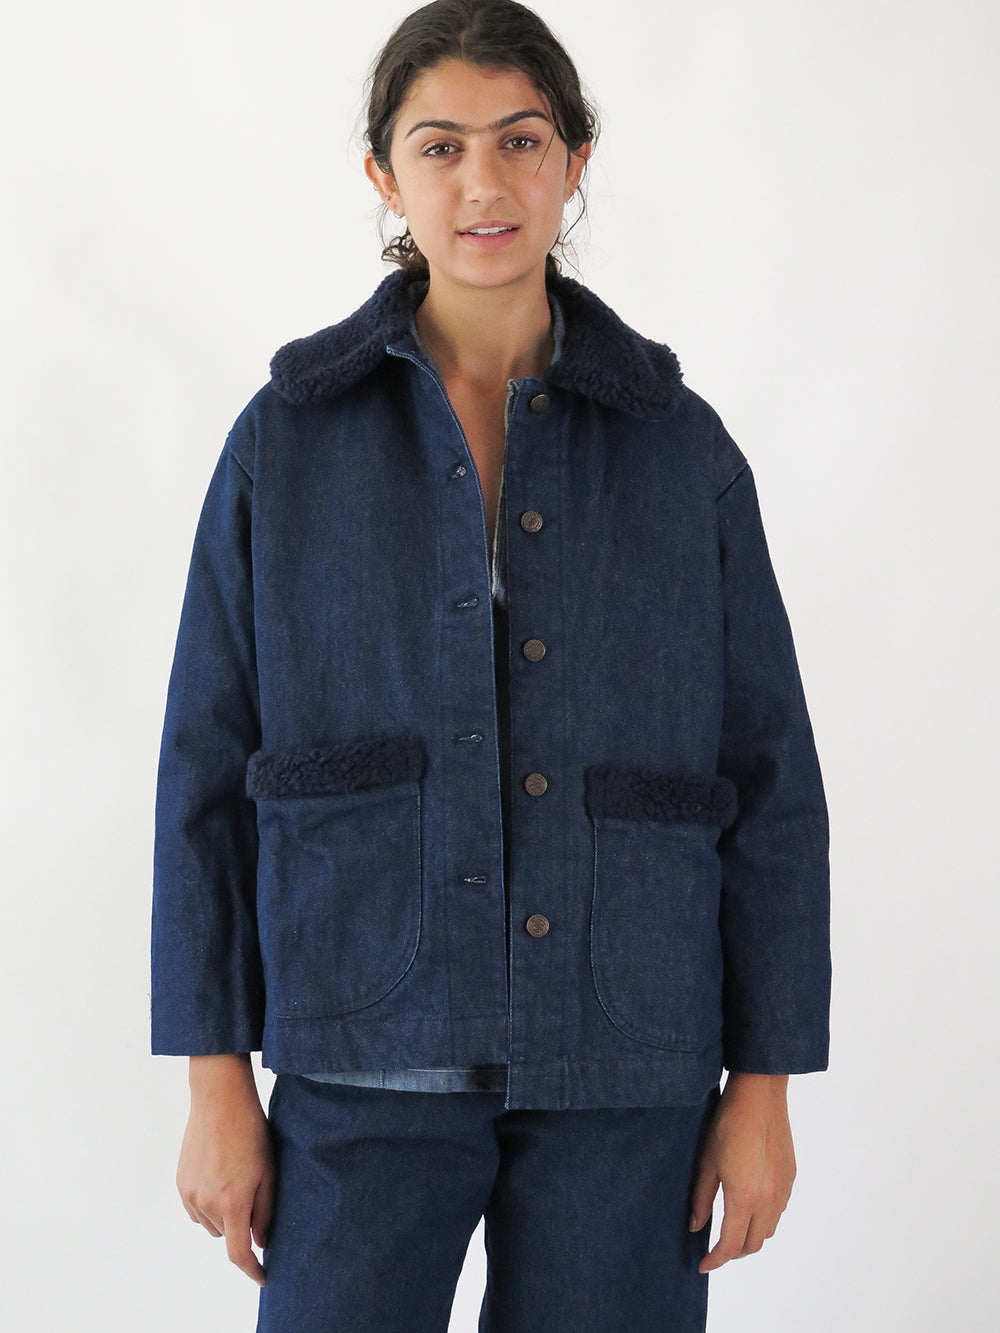 uqnatu sherpa jacket in navy